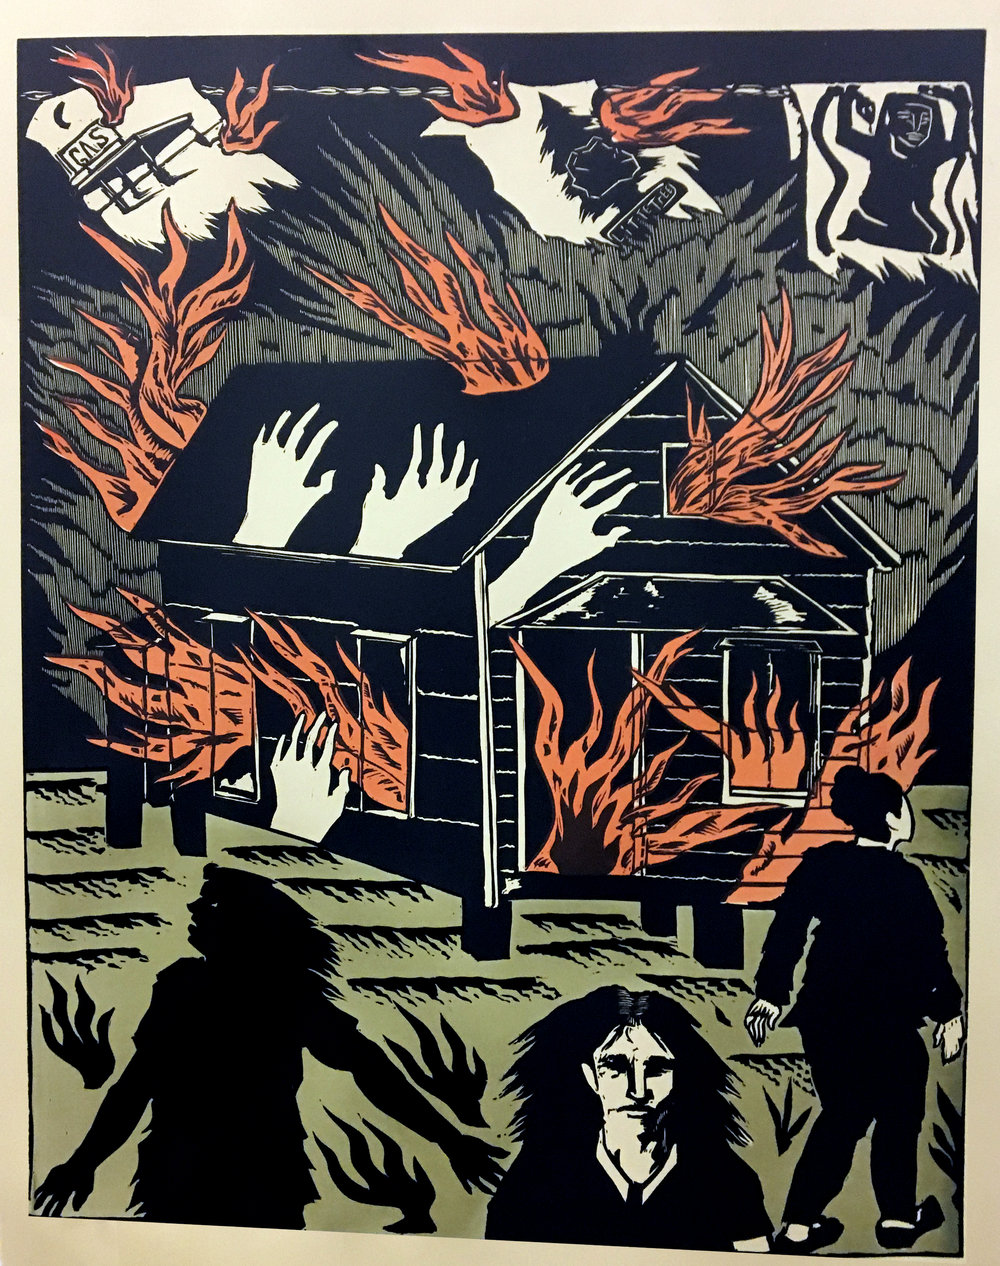 Emmett Merrill,  The Fire,  Relief print, 28 x 22, $350